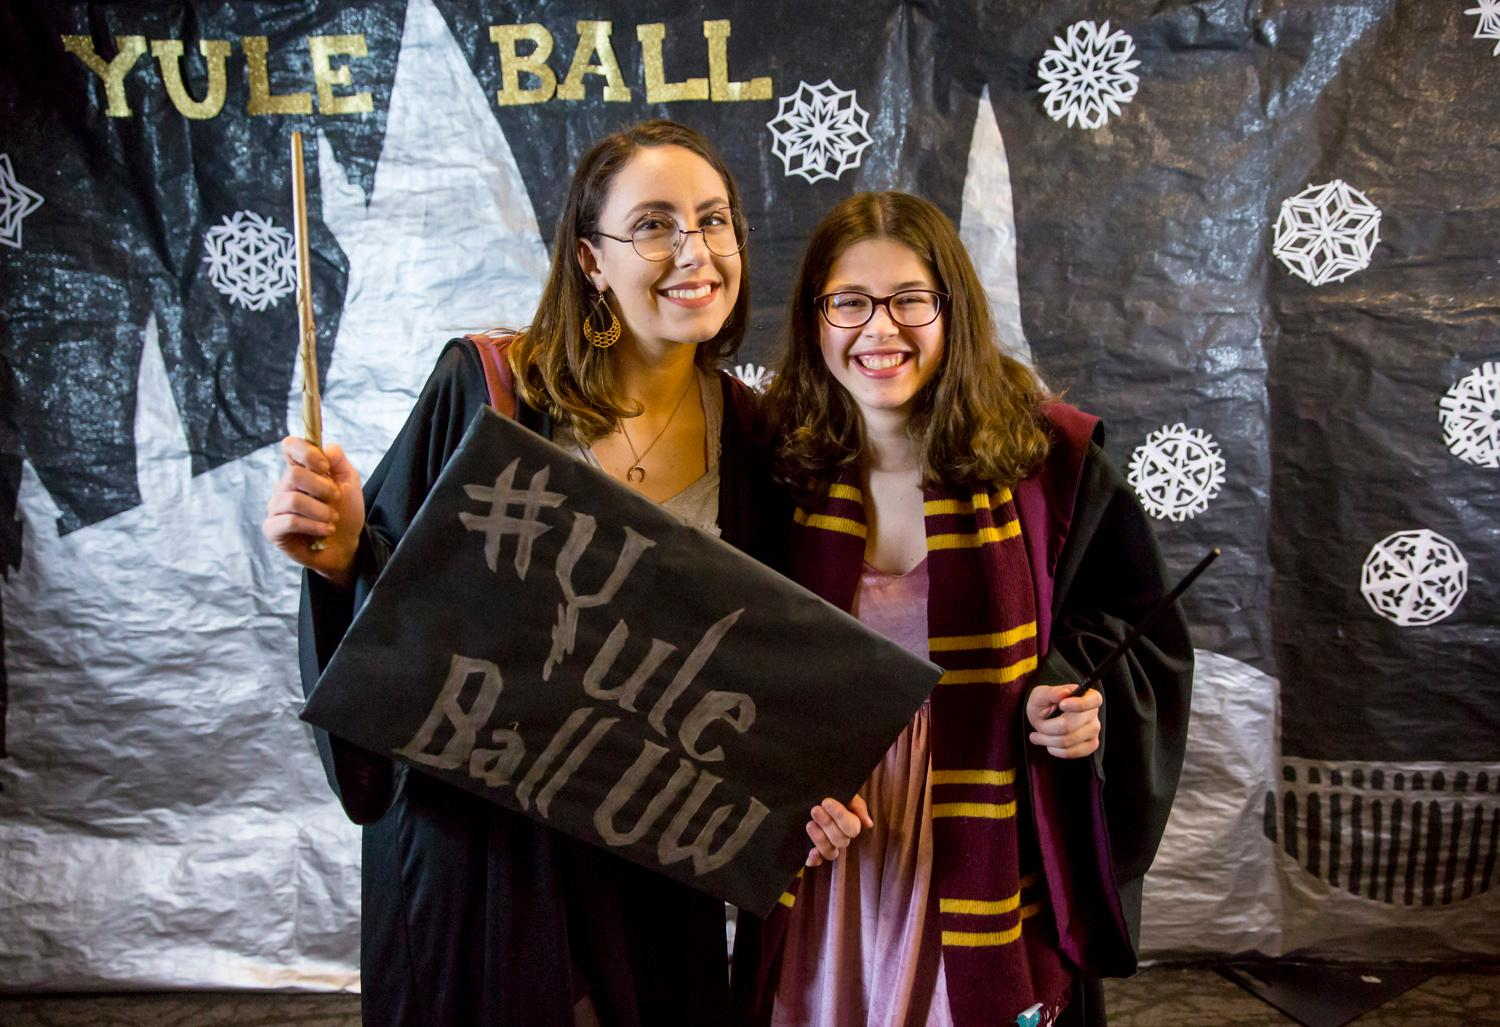 The University of Washington called all the witches and wizards around for the 2018 Yule Ball! Students dressed in costume, casted spells, and drank delicious butter beer. (Sy Bean / Seattle Refined)